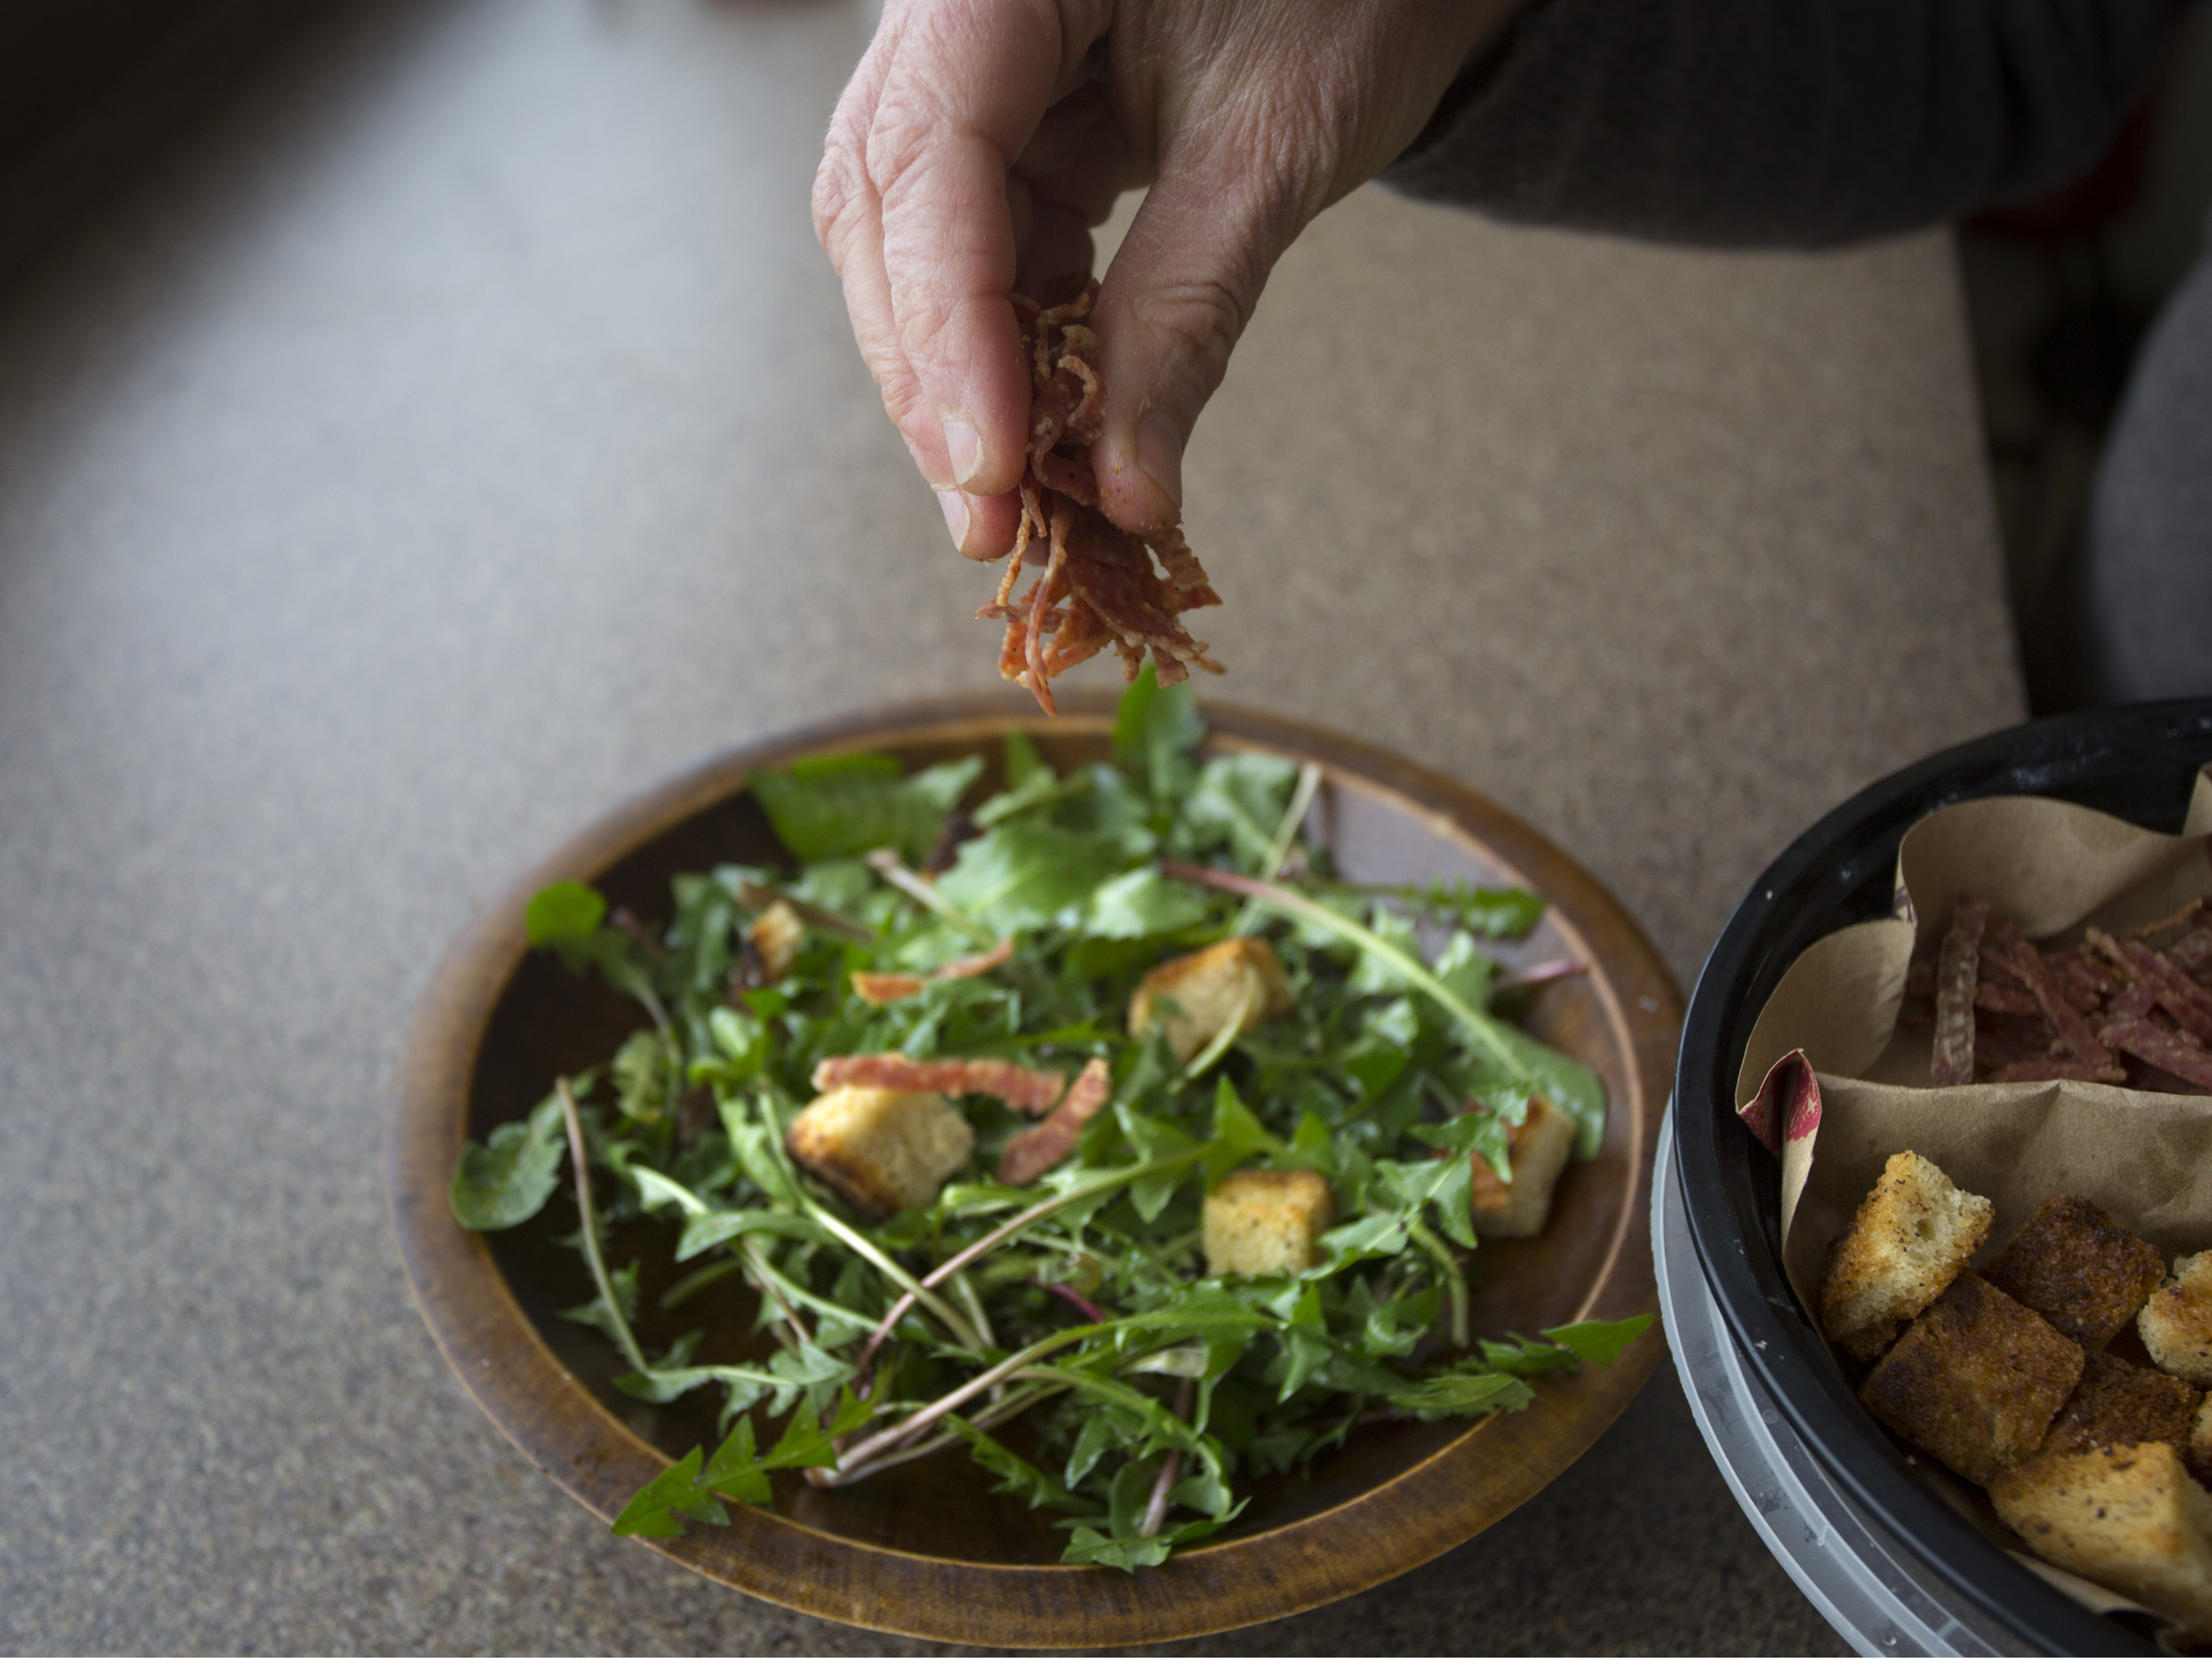 PORTLAND, ME - APRIL 26: Dandelion greens salad. (Photo by Derek Davis/Staff Photographer)